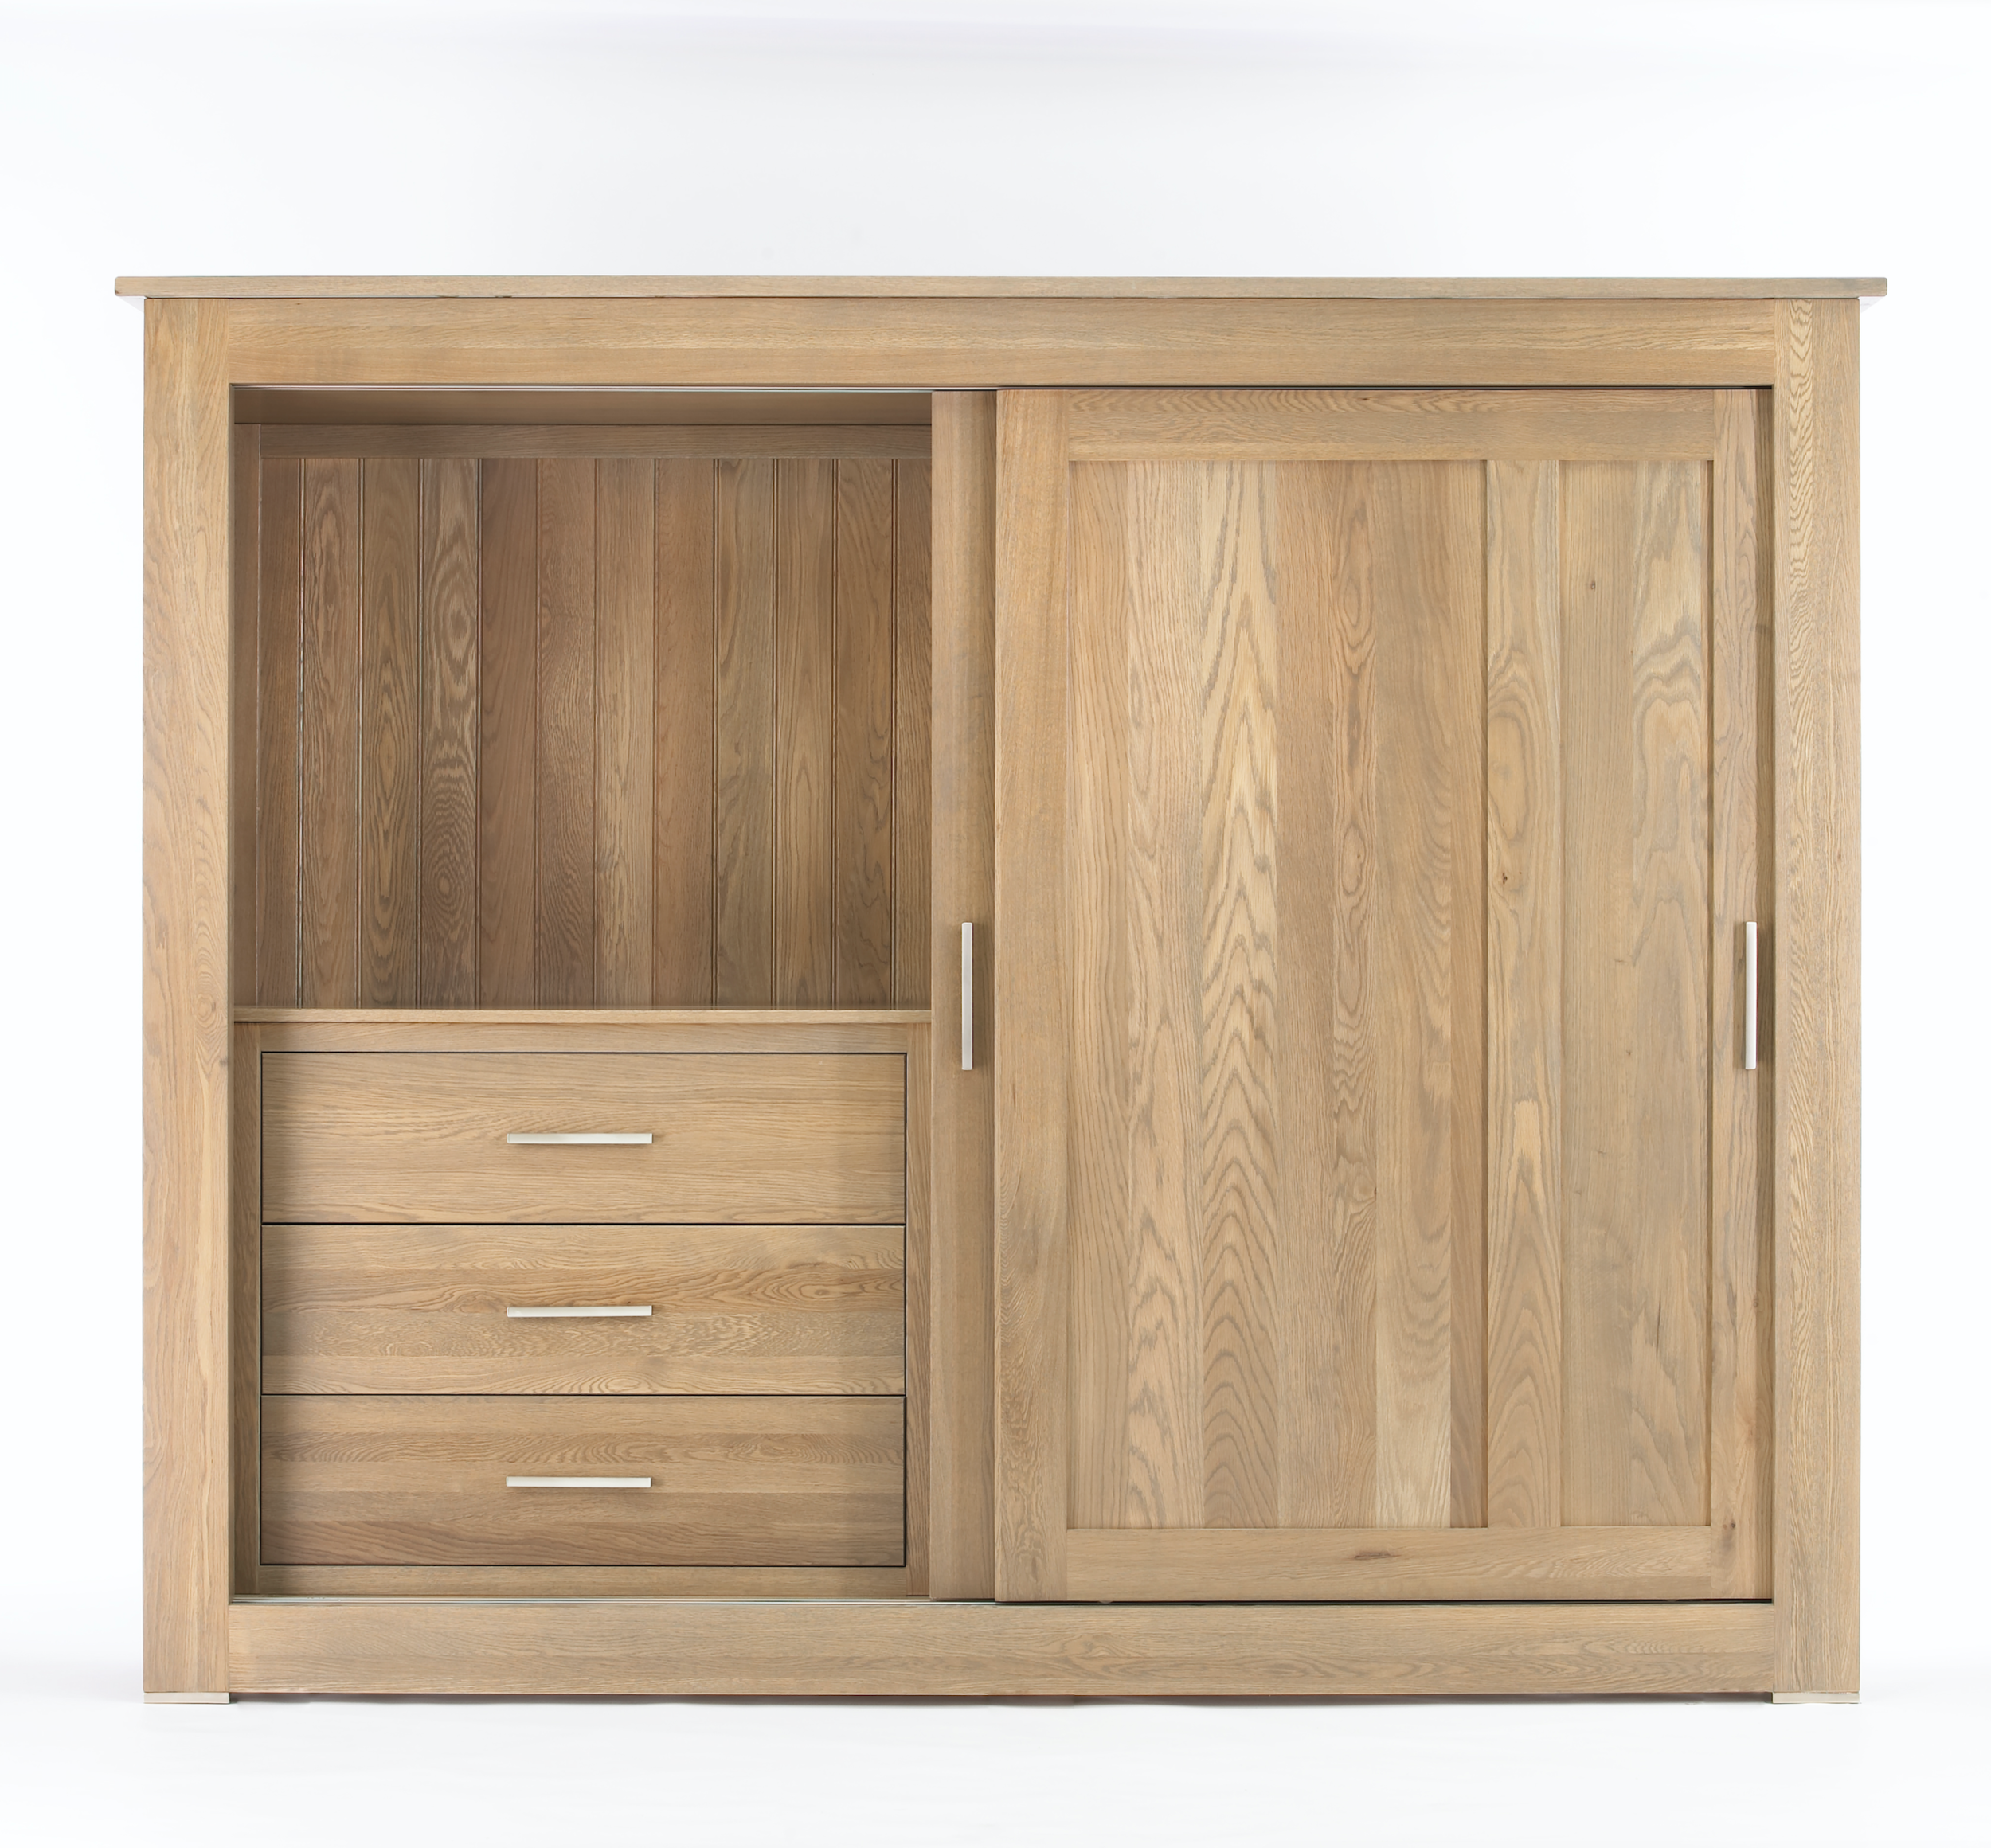 Quercus Solid Oak Sliding Door Wardrobe 2 4m Con Tempo